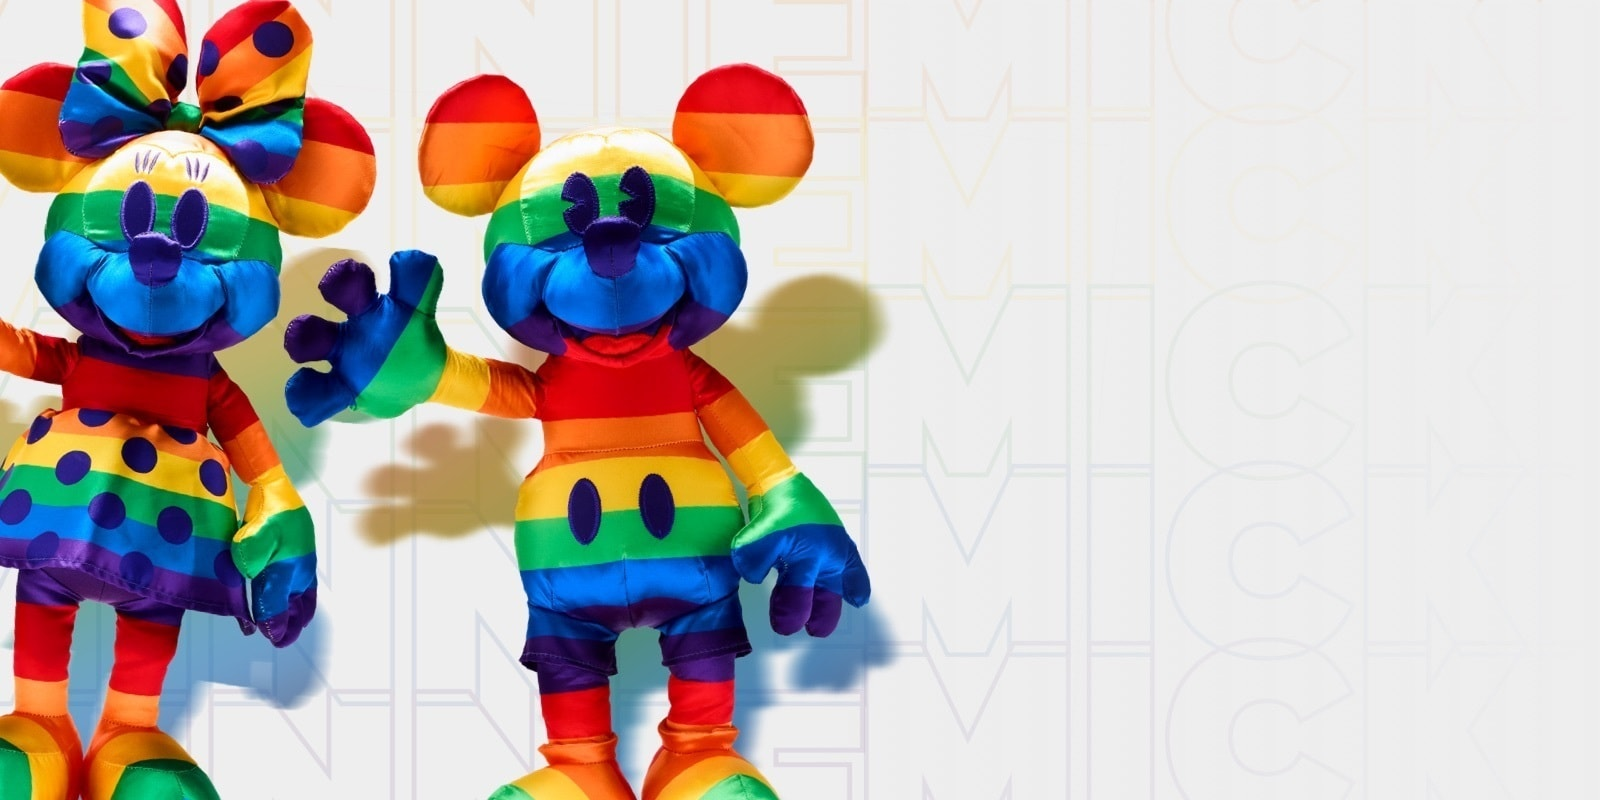 Rainbow Mickey and Minnie soft toys